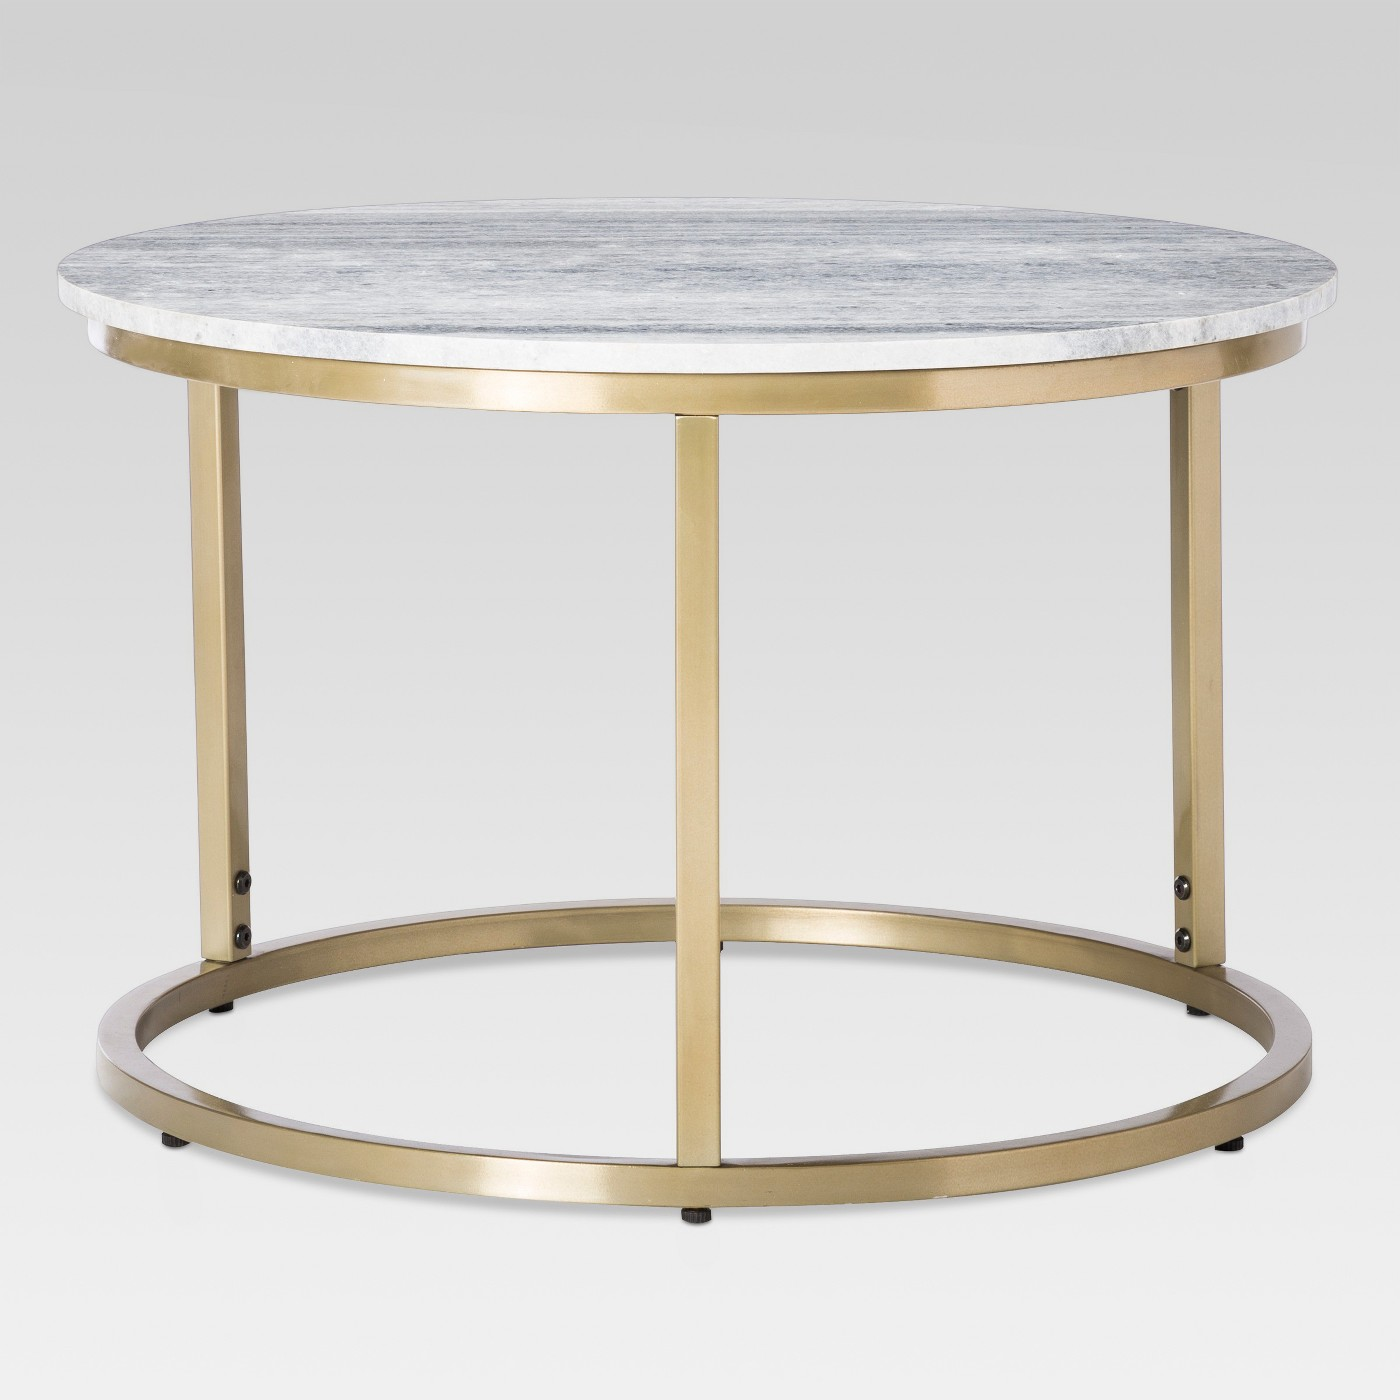 coffee tables target home that complete your guest zoey night accent table with baskets walnut living room for less making end two drawer mirrored bedside winsome sasha round